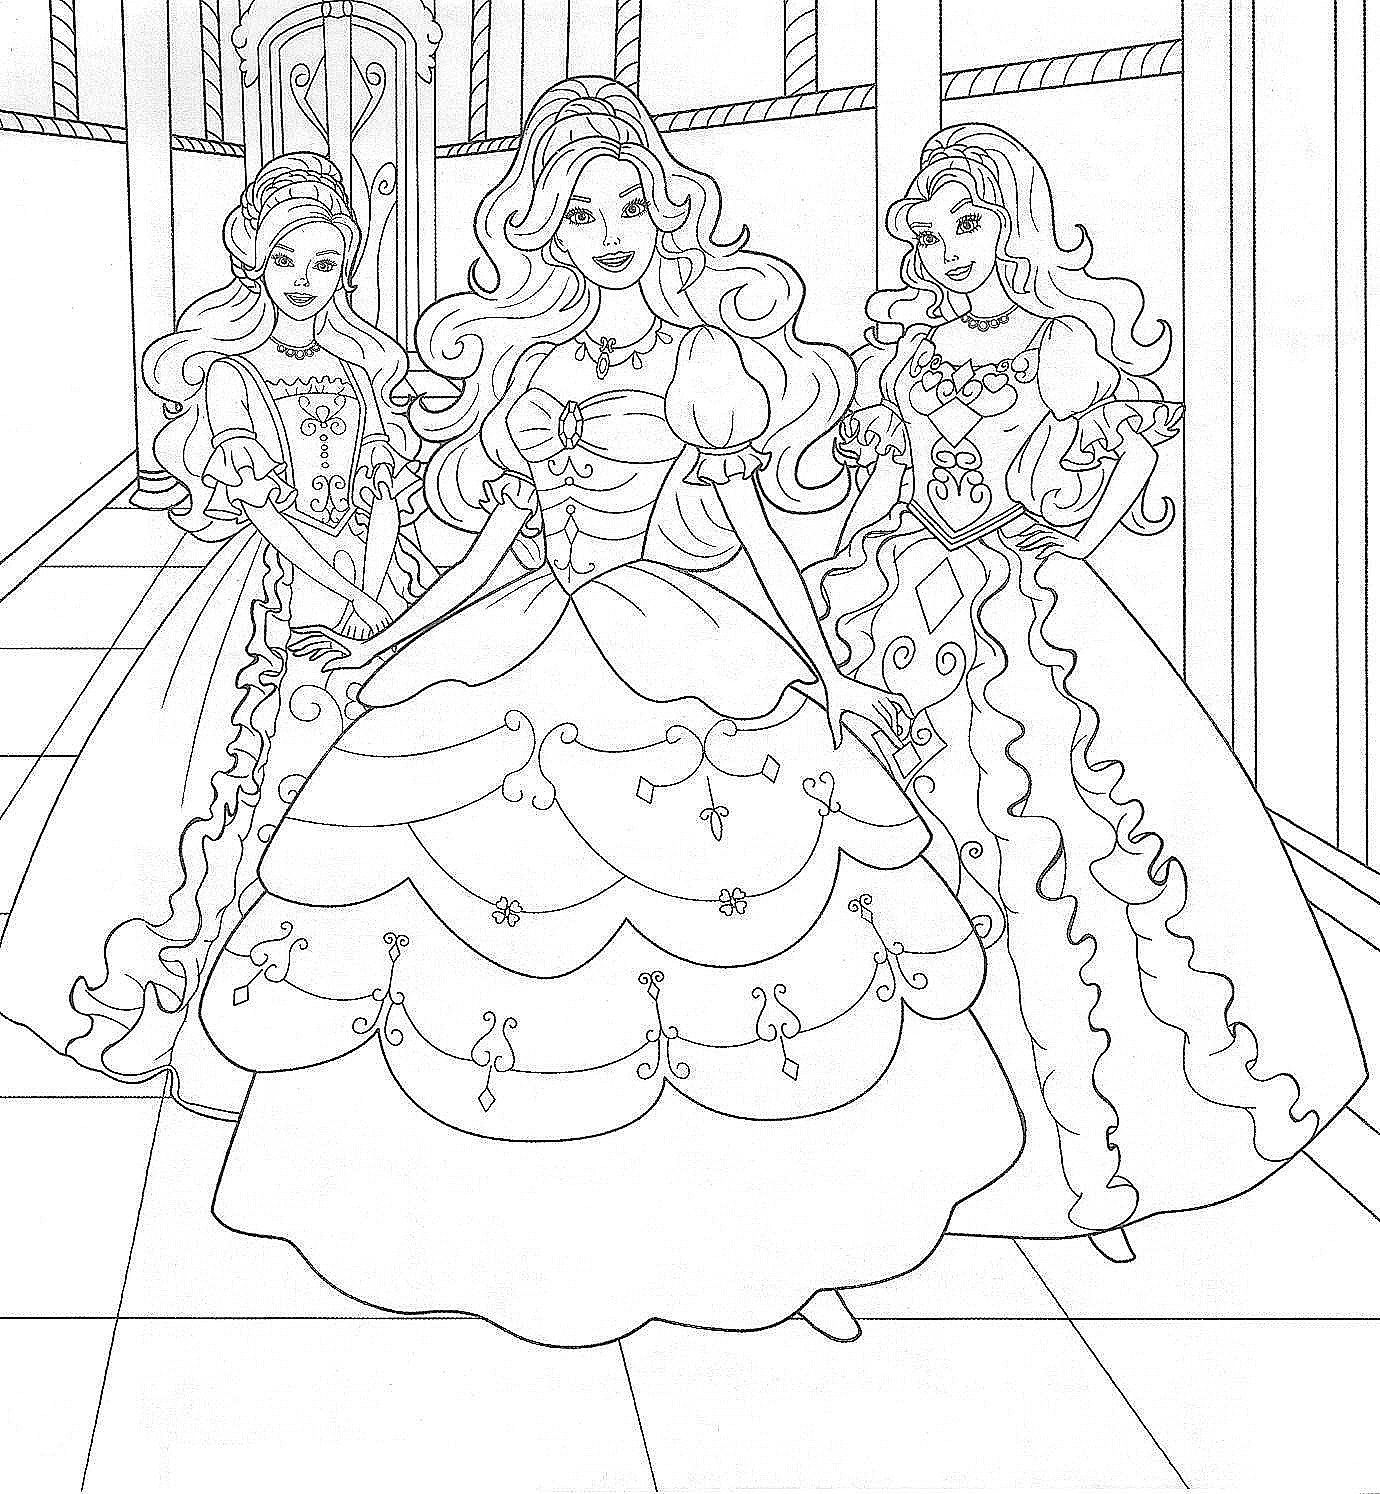 Princess aurora coloring pages games - Children Love To Portray Characters In Their Paintings Barbie Coloring Pages To Fill With Interesting